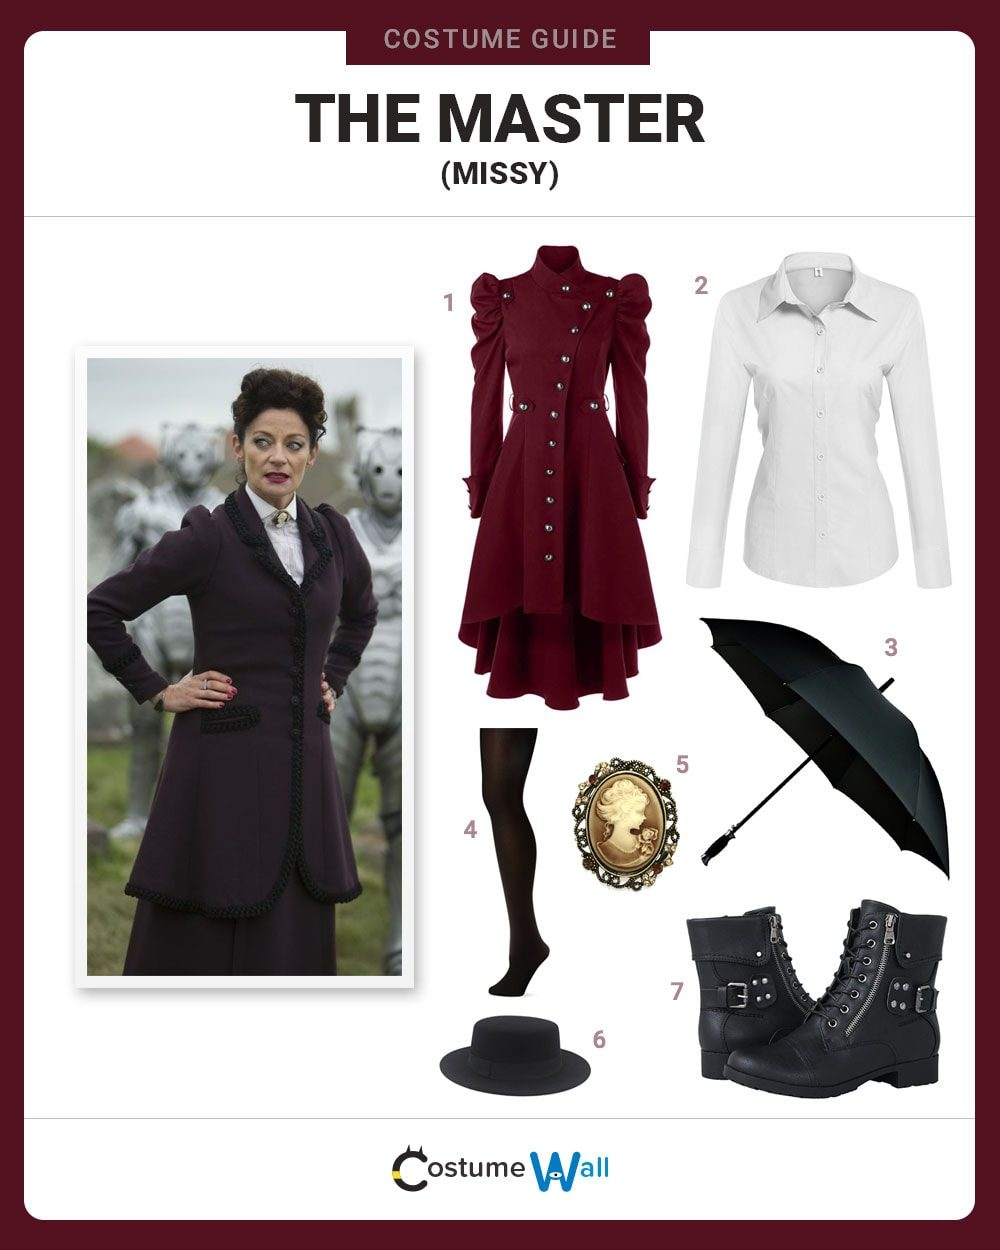 The Master (Missy) Costume Guide